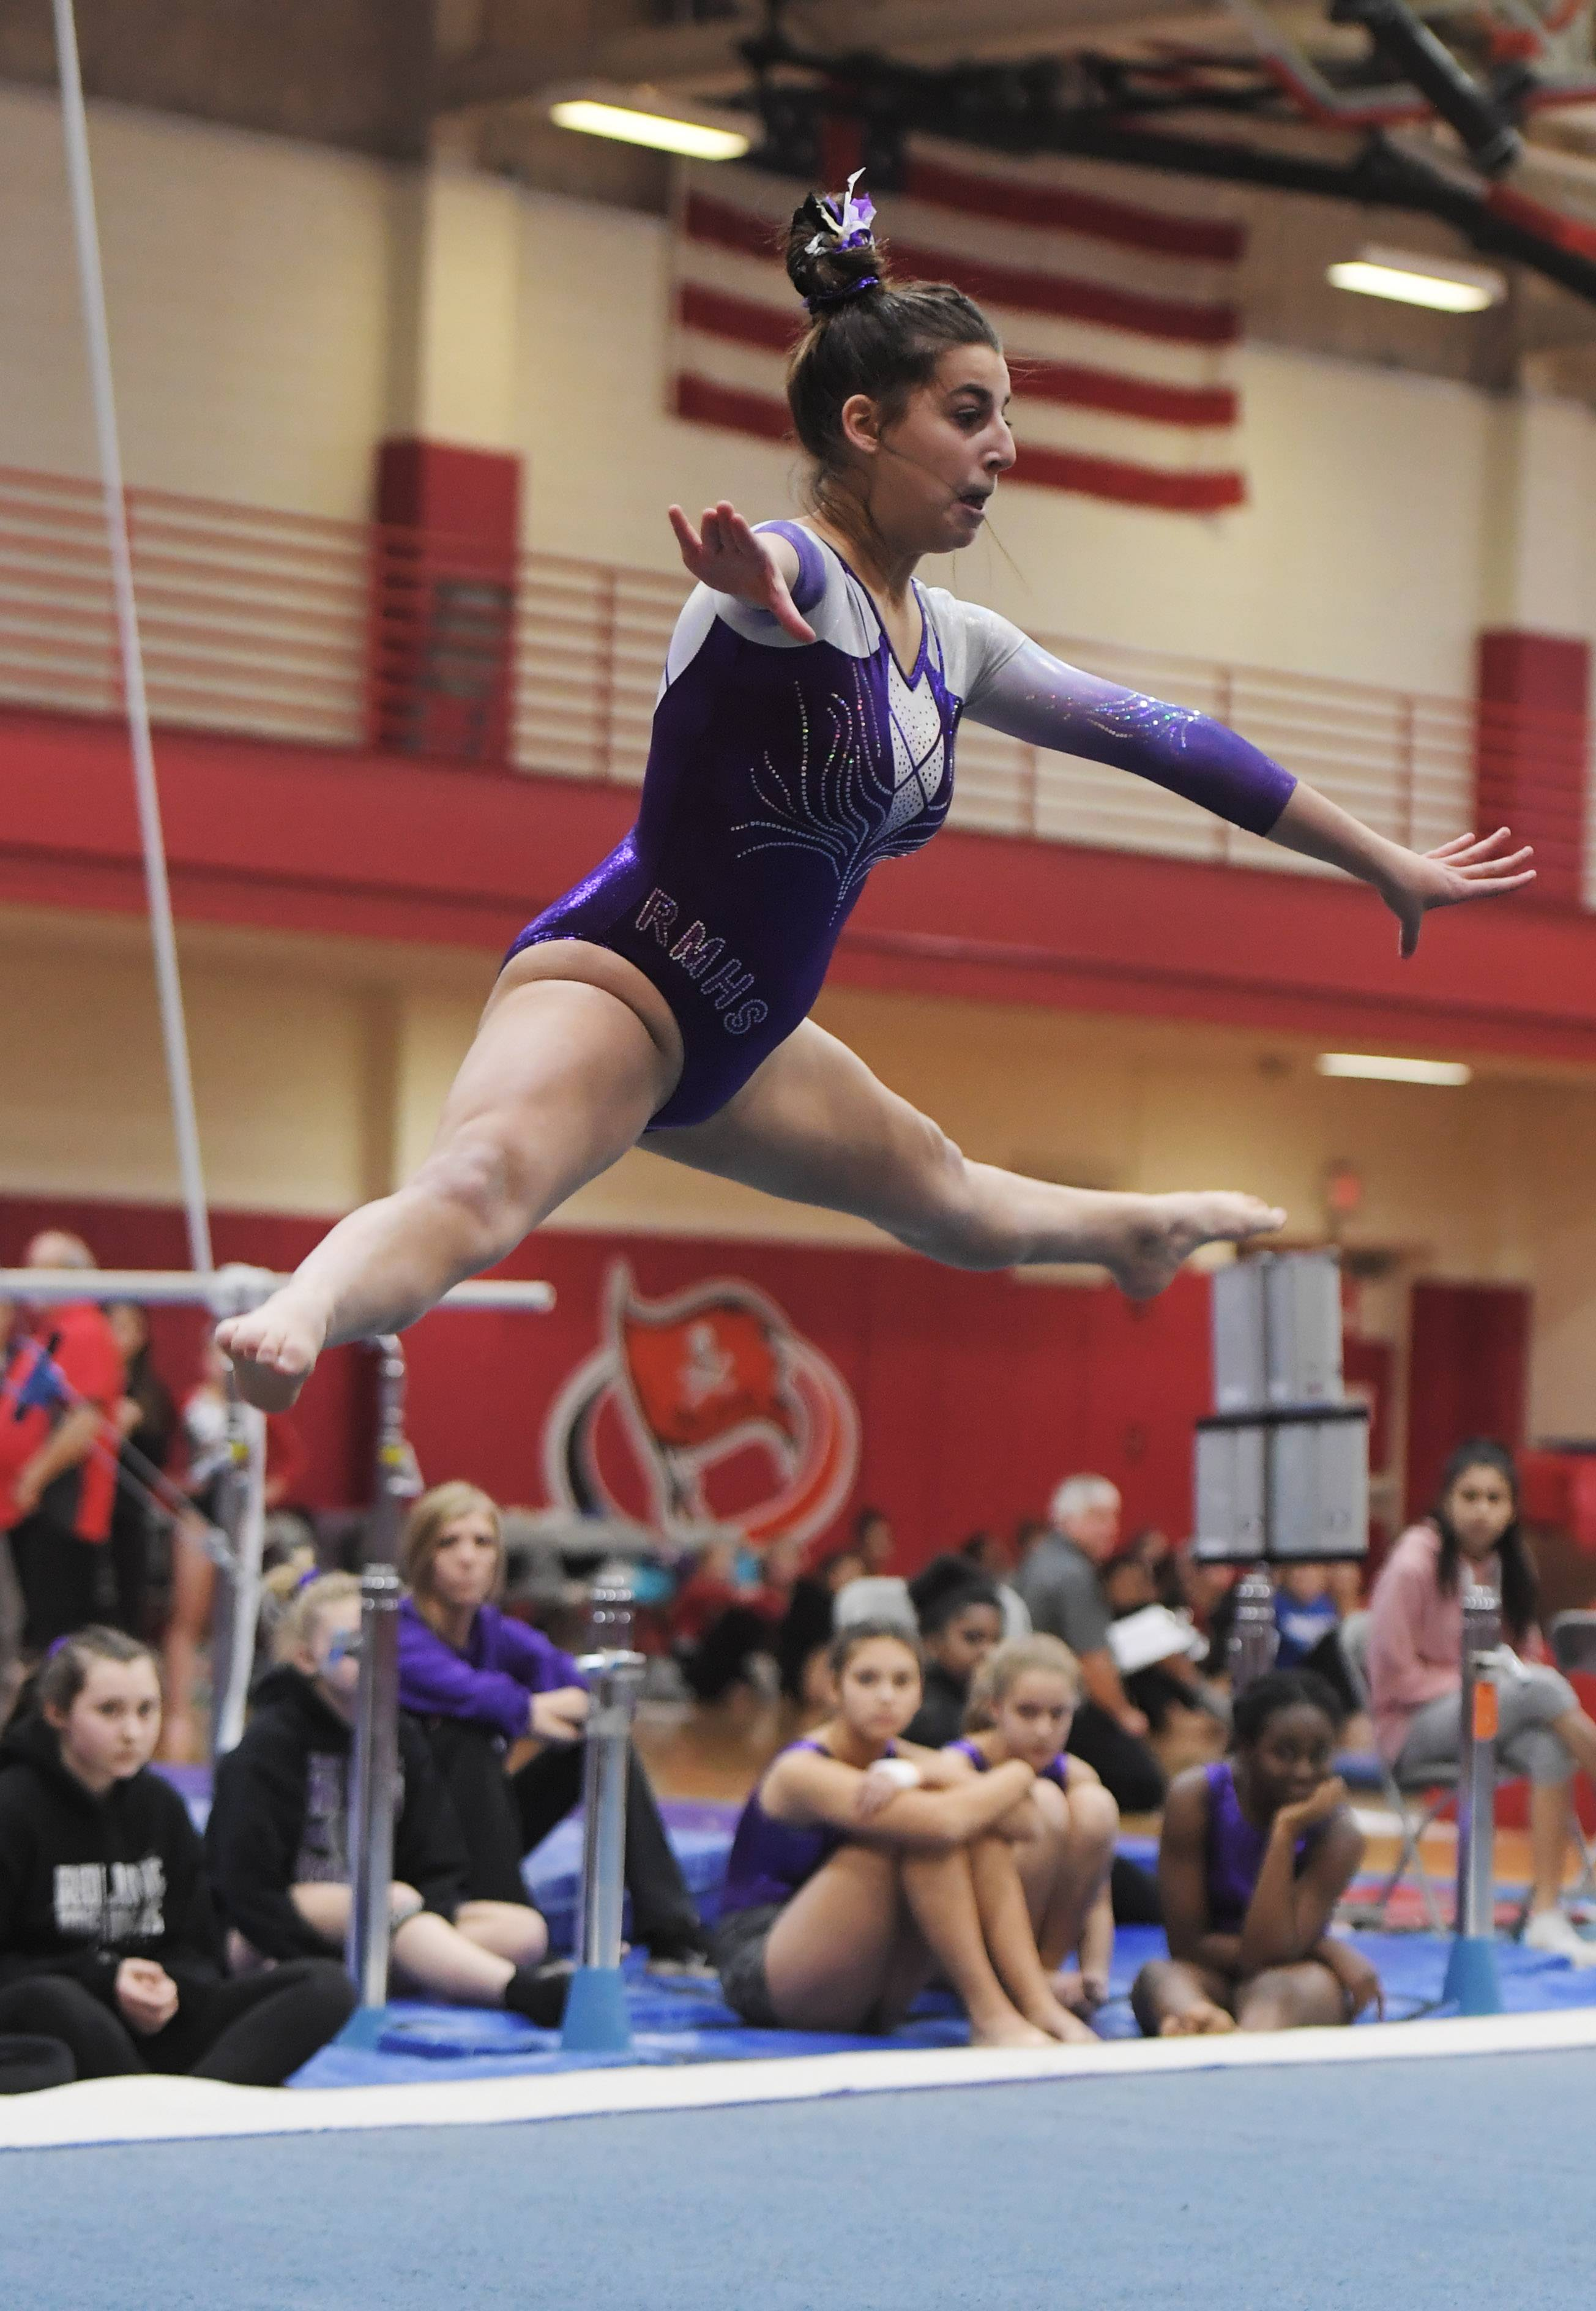 Rolling Meadows' Roula Zervos competes on the floor exercise during Wednesday's meet at Palatine.